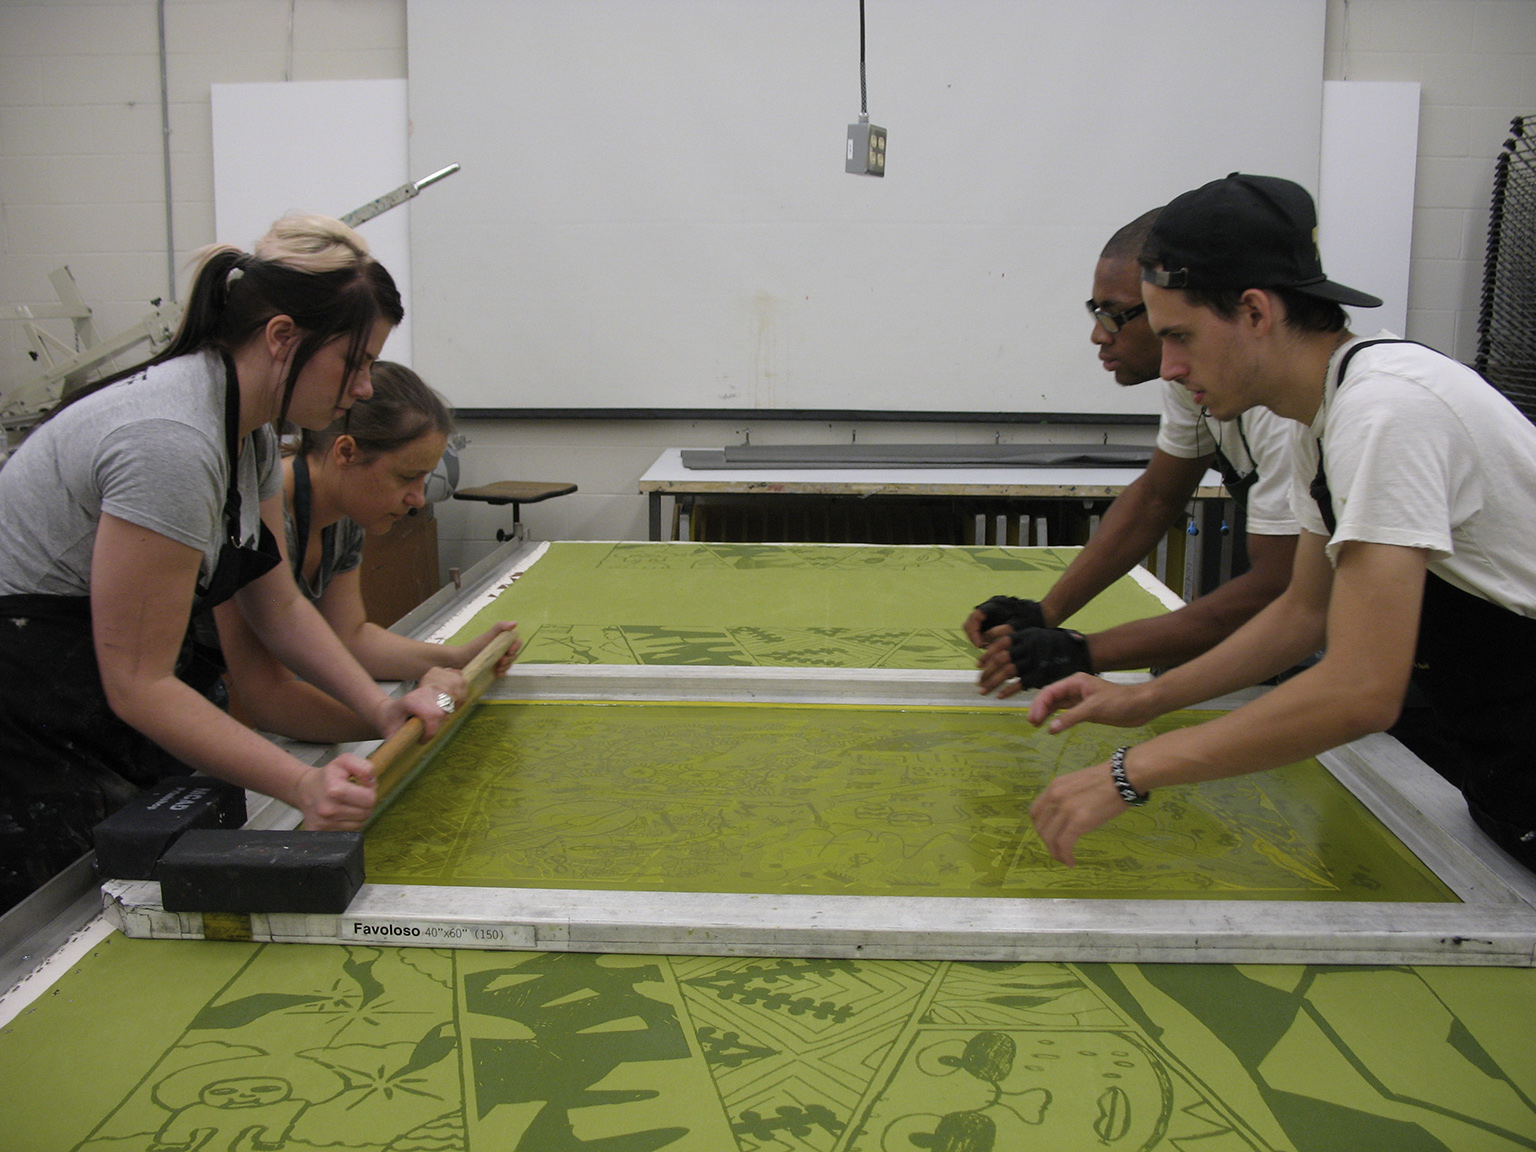 Screenprinting custom couch slipcovers in the MCAD printshop